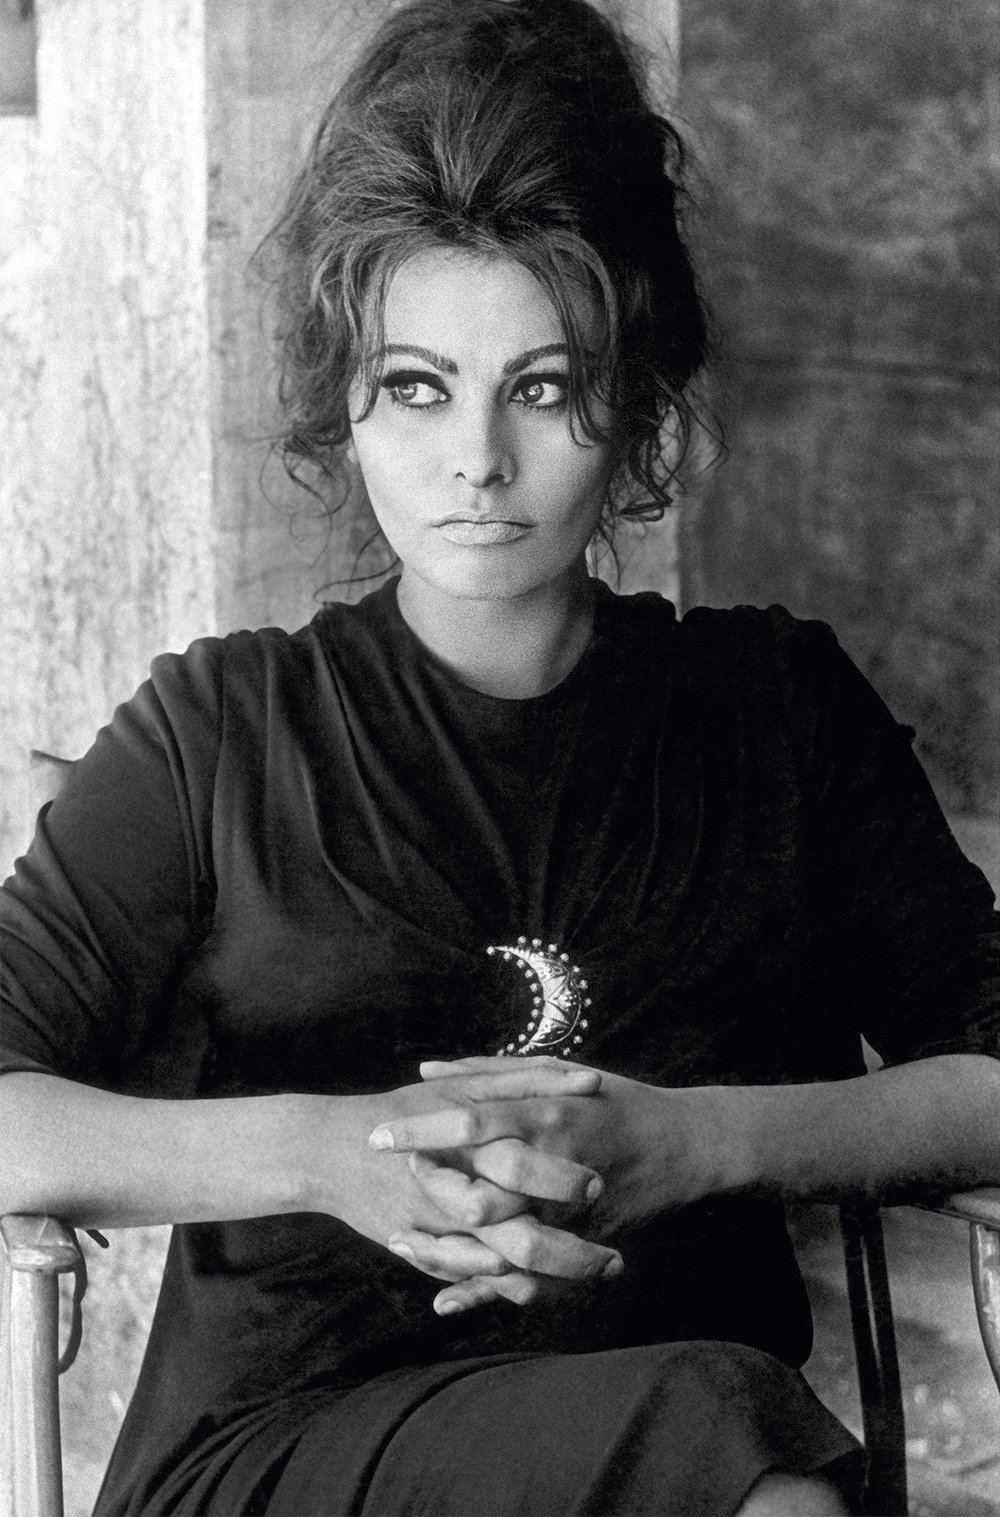 Sophia Loren on the set of Anthony Mann's 'The Fall of the Roman Empire', Spain, May 1963 - for Queen Magazine